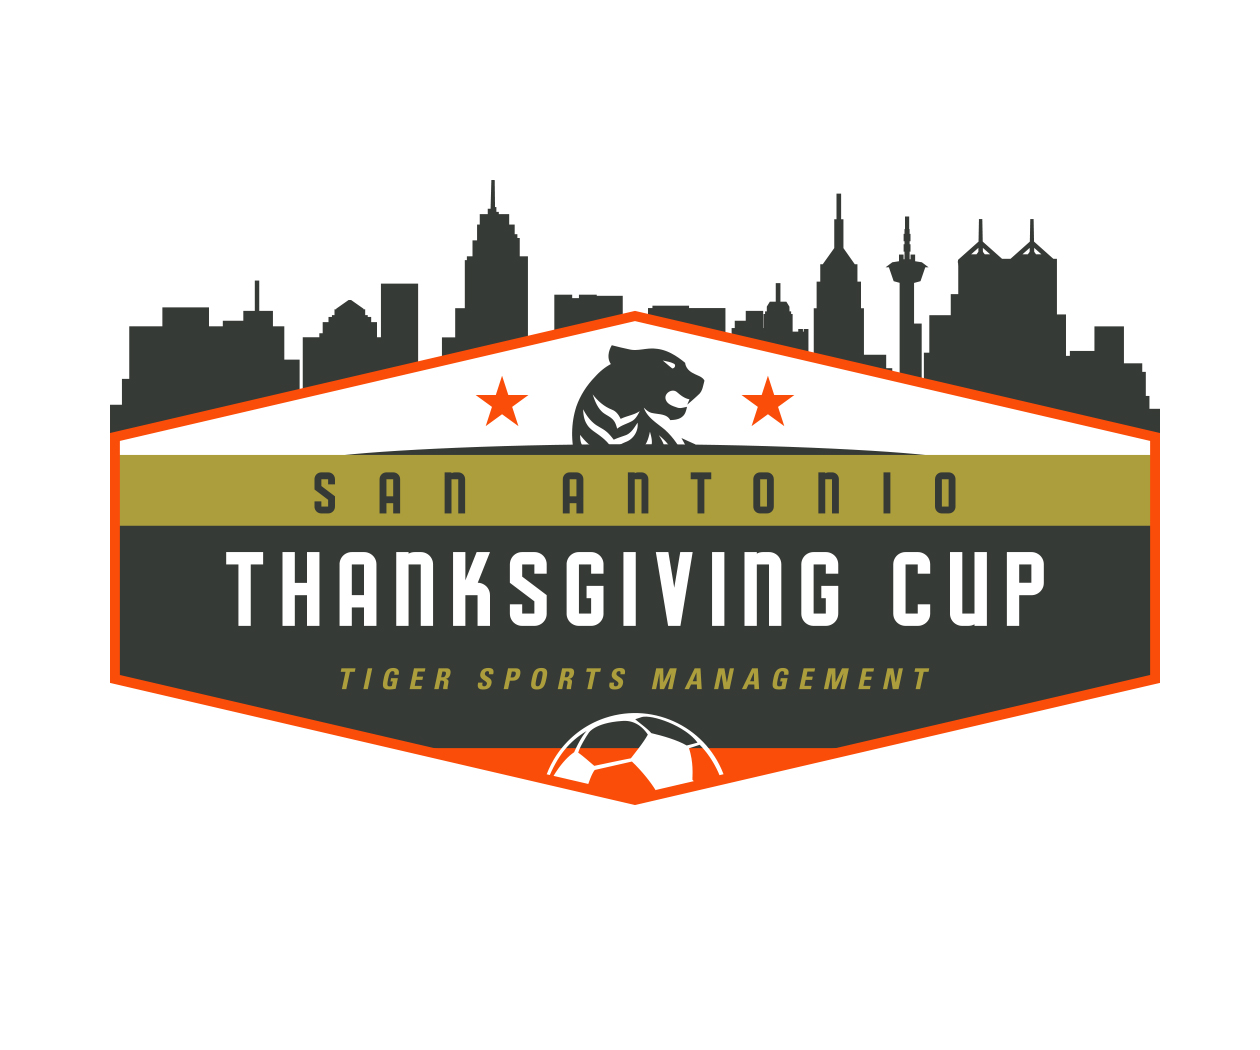 custom-soccer-logo-design-by-jordan-fretz-for-san-antonio-thanksgiving-cup-2.jpg